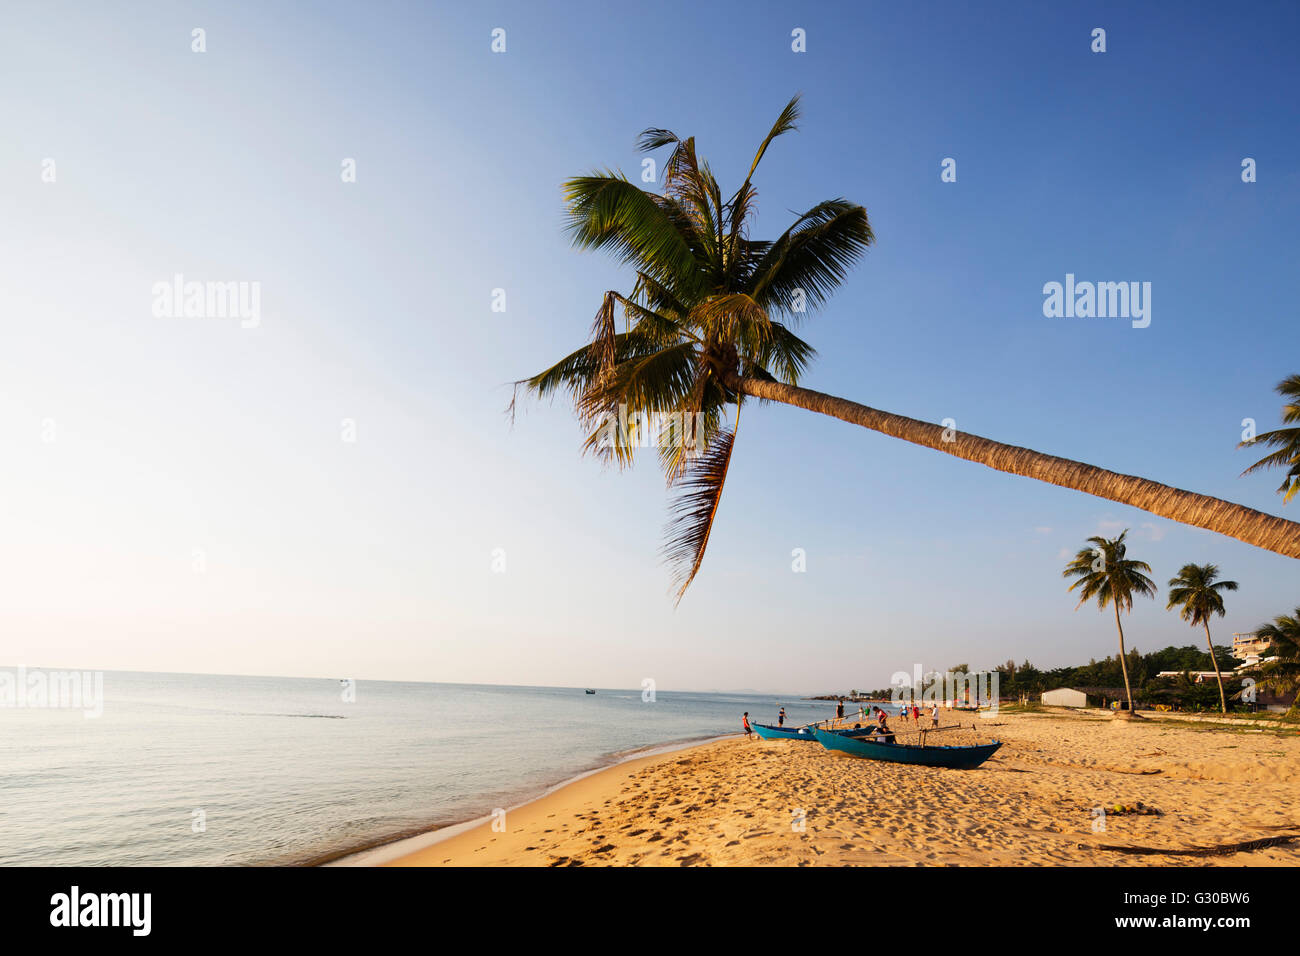 Long Beach, Phu Quoc Island, Vietnam, Indochina, Southeast Asia, Asia - Stock Image